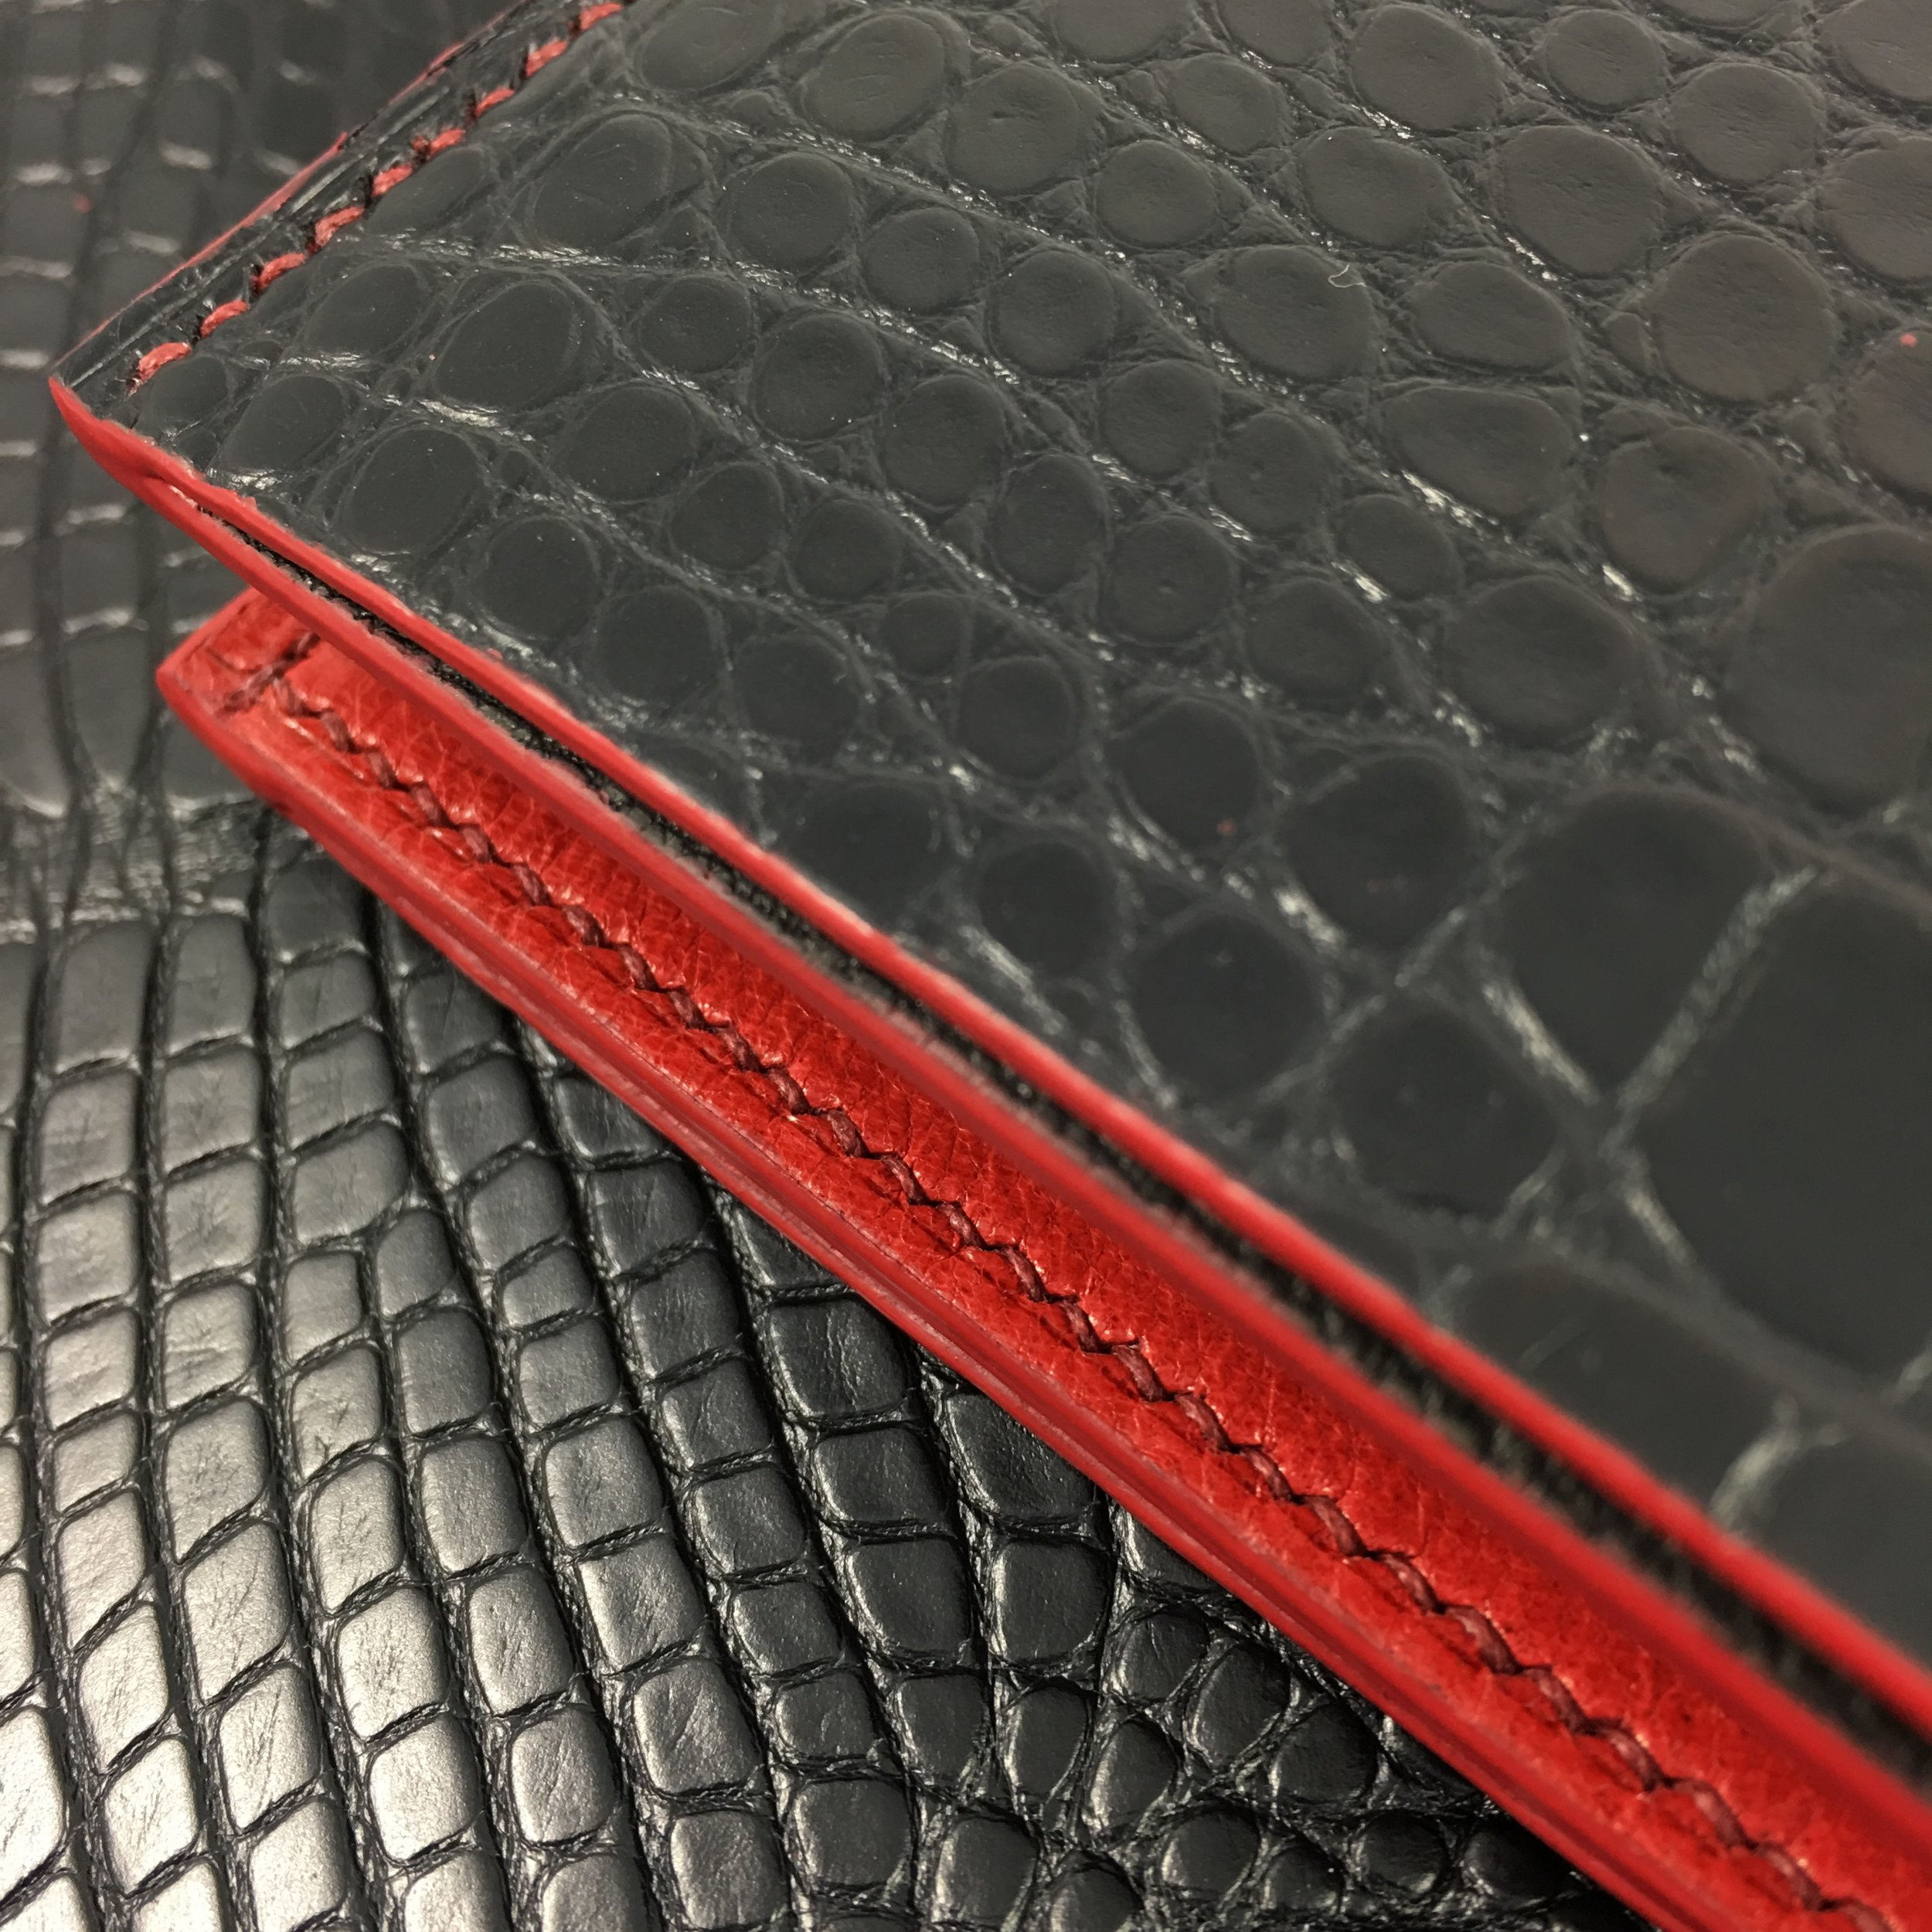 Bifold 8 slot wallet in Black Croc with Chevre Rogue